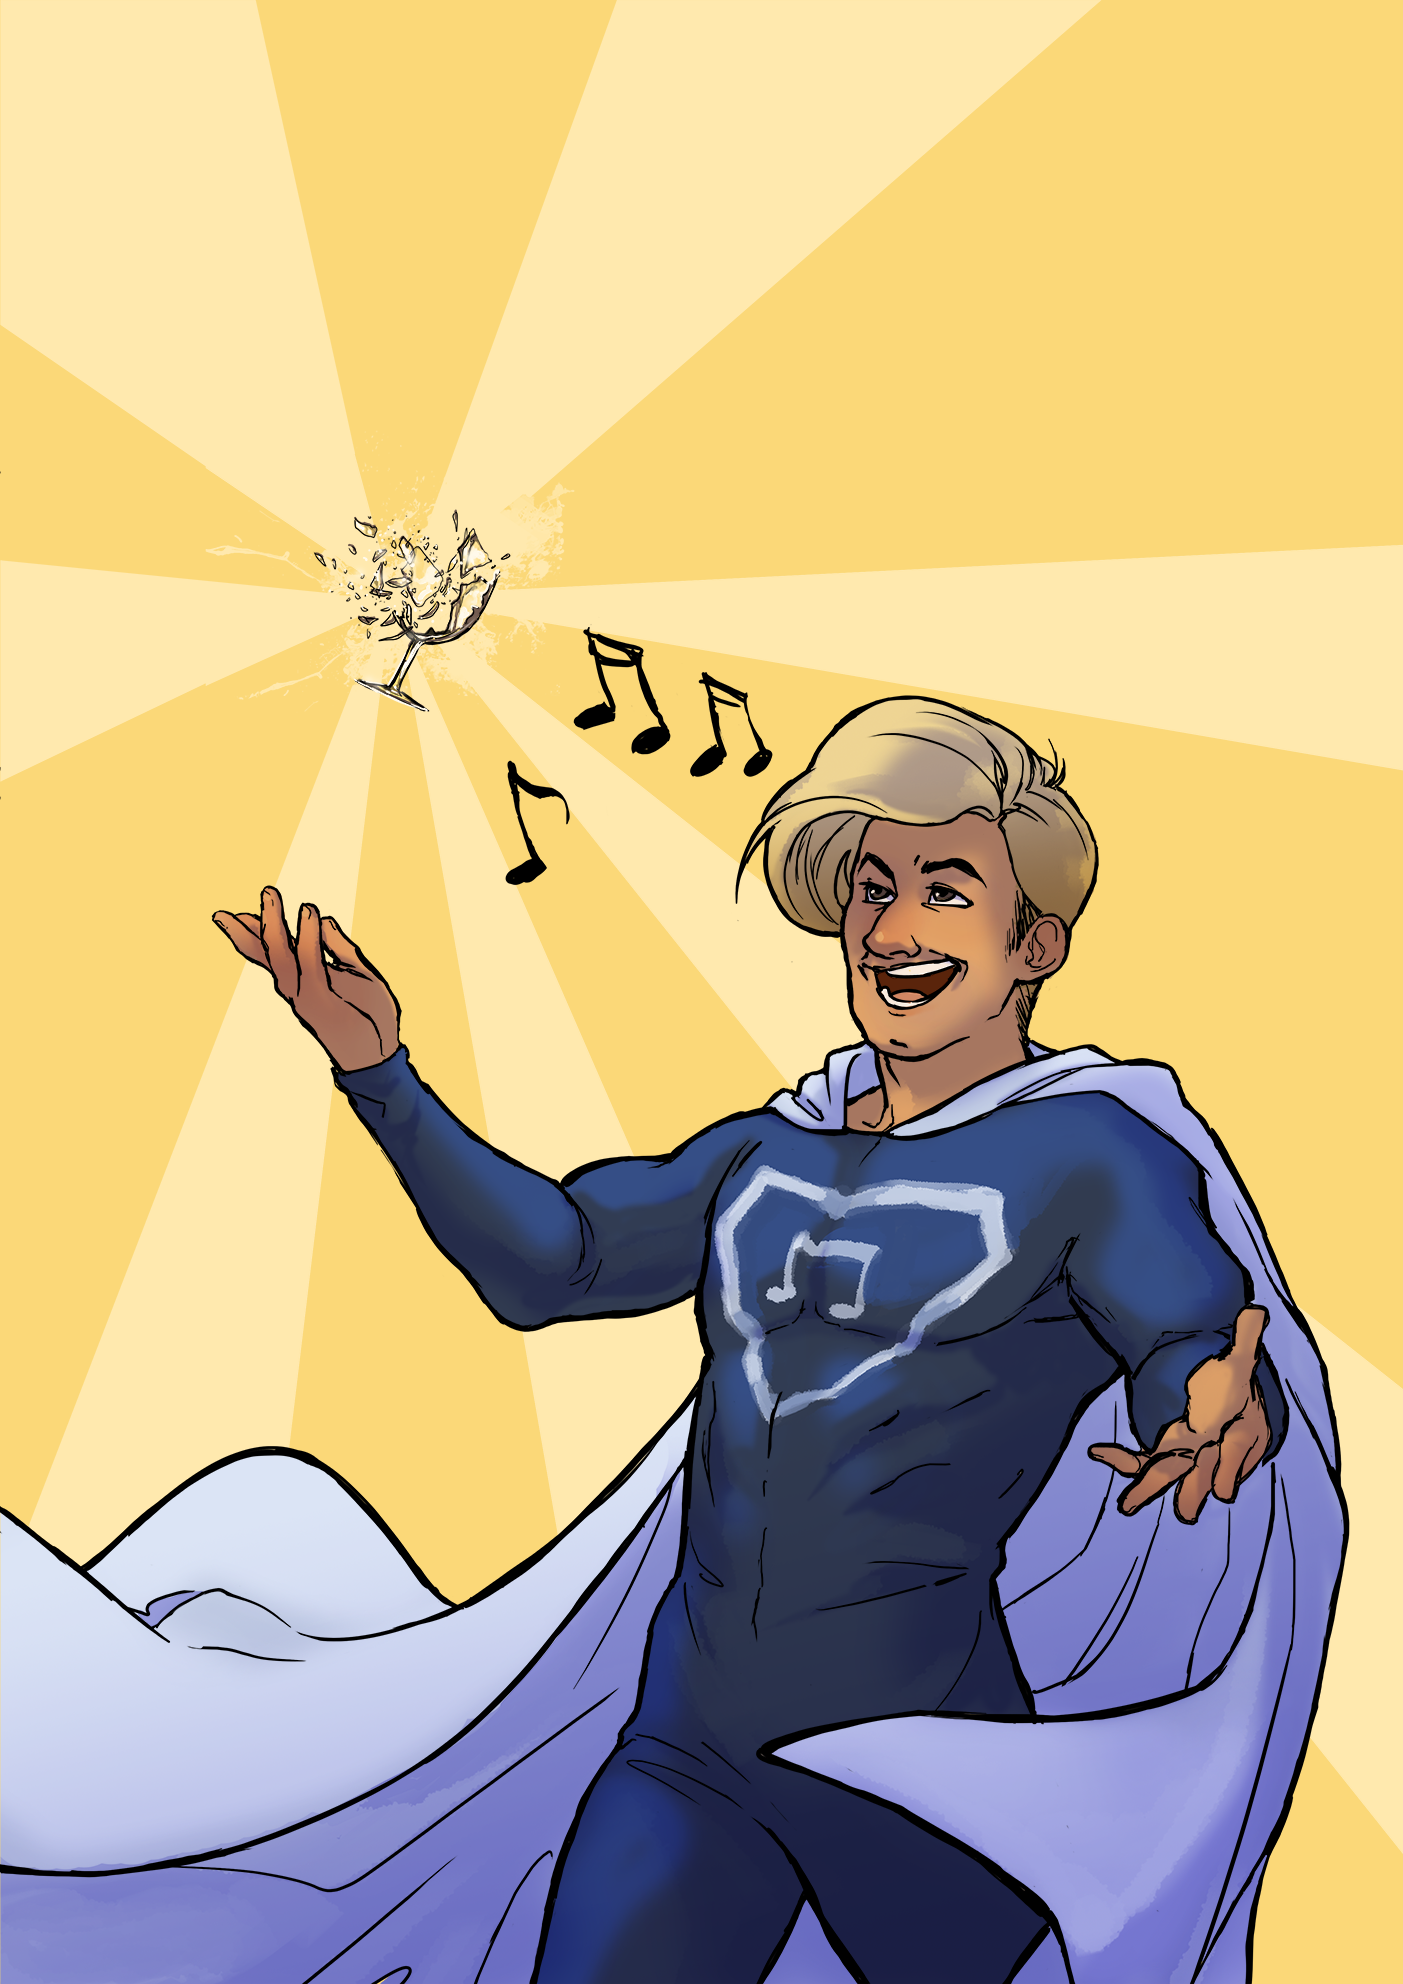 Gaston The Singing Superhero by Toradh